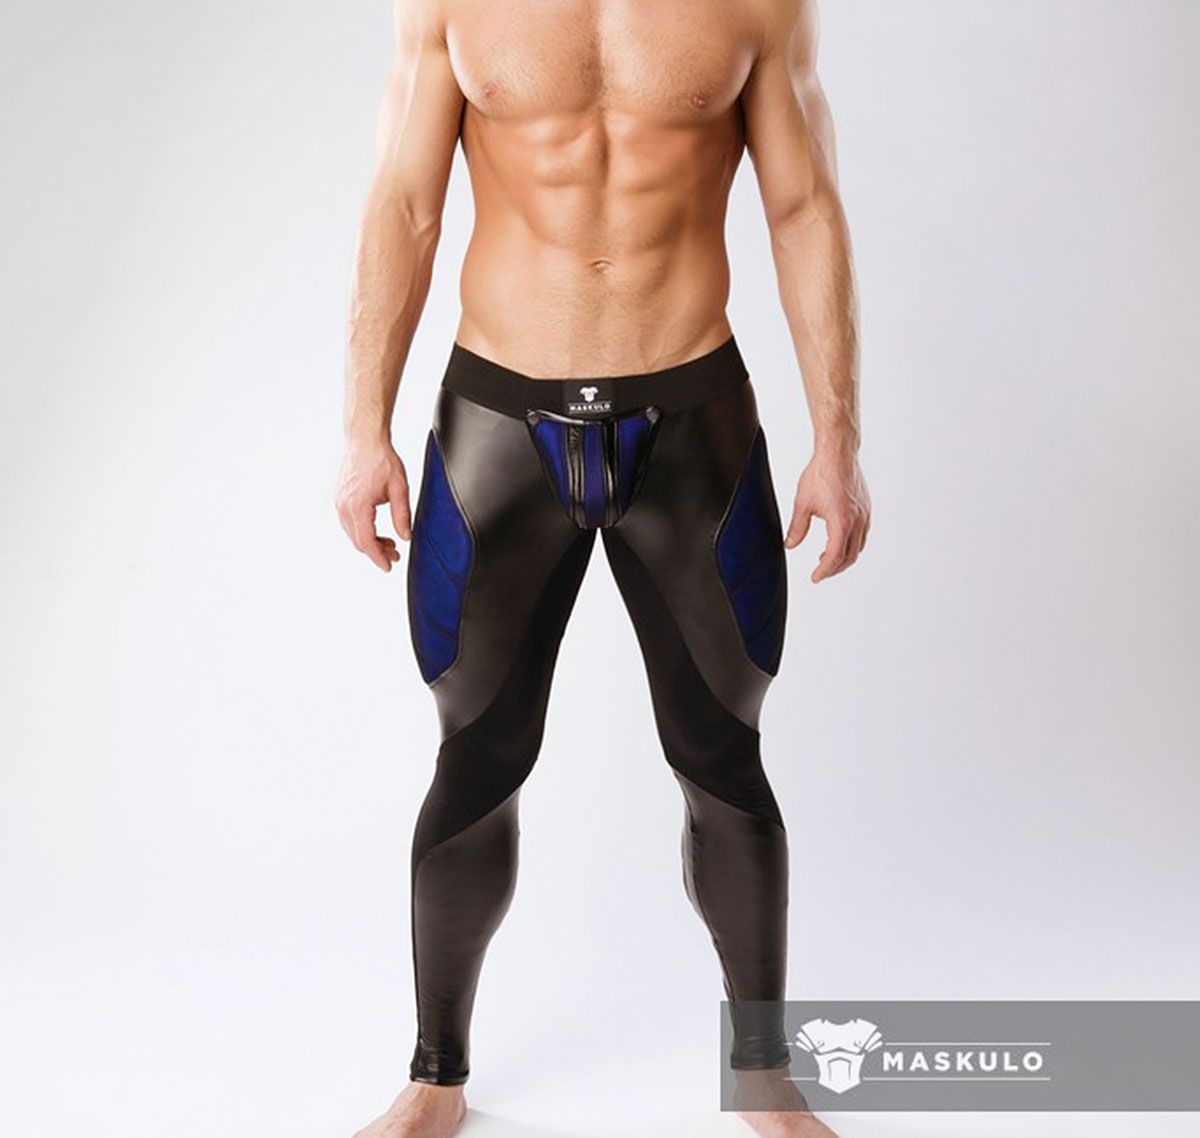 MASKULO Leggings Fetish ARMORED. COLOR-UNDER. LG062, nero/blu